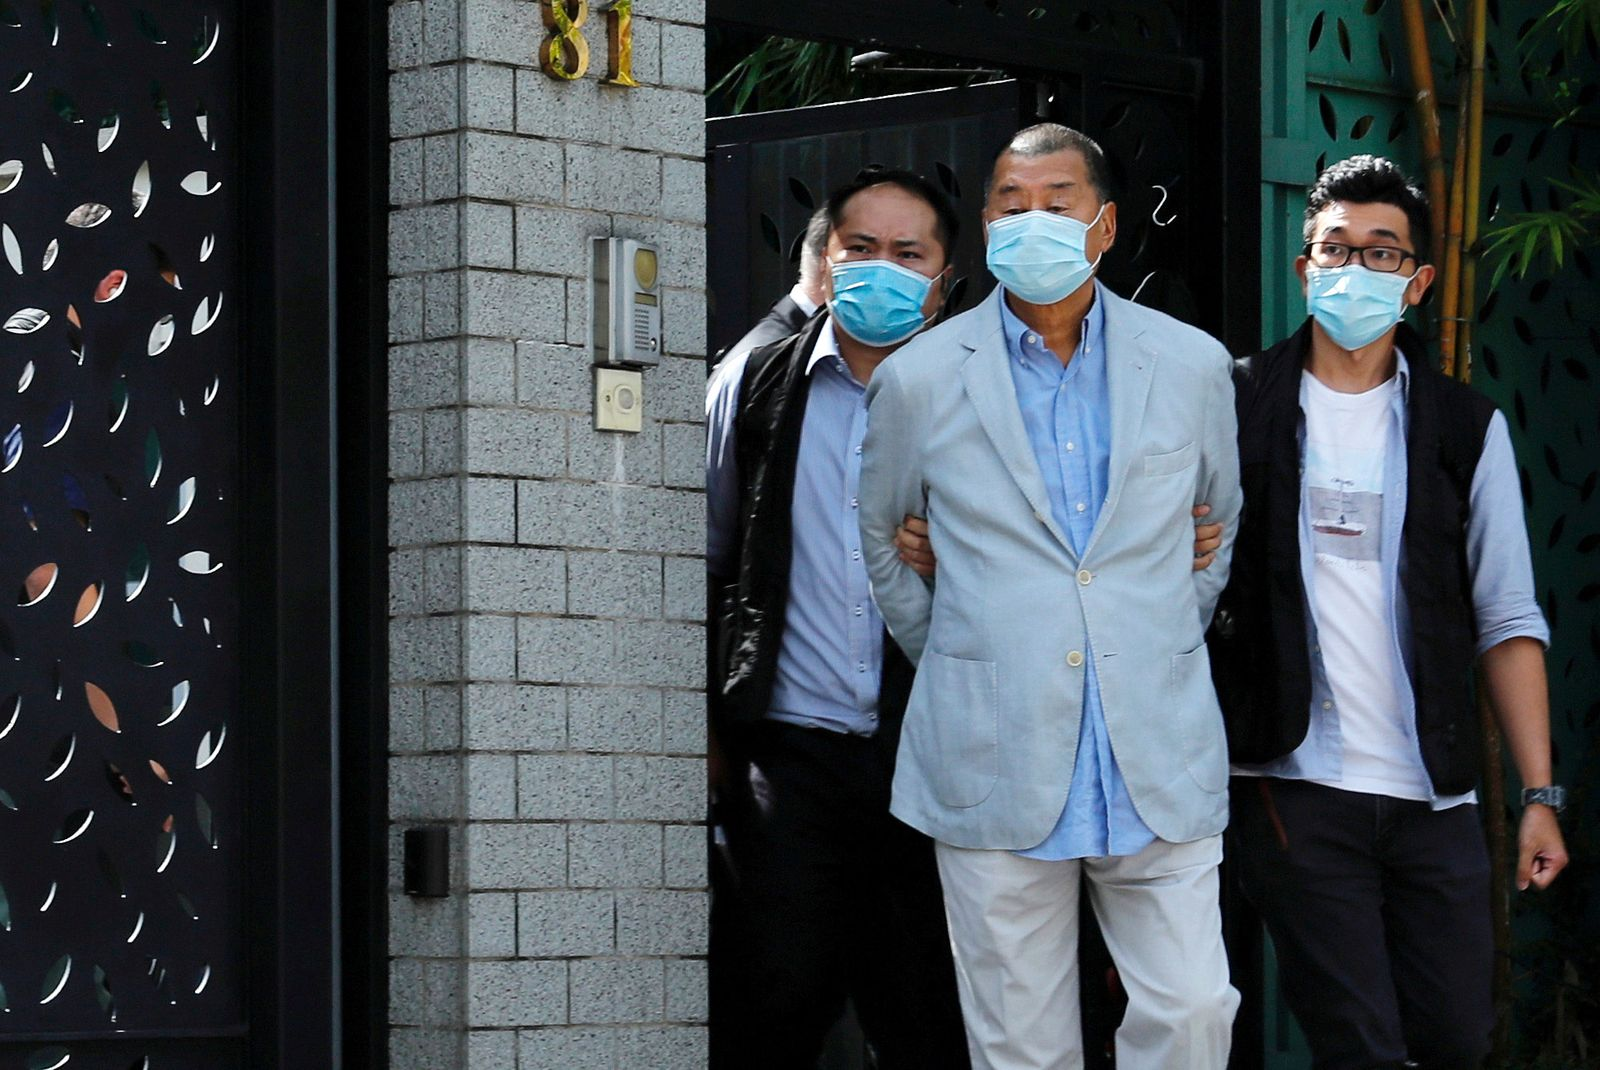 Media mogul Jimmy Lai Chee-ying, founder of Apple Daily is detained by the national security unit in Hong Kong